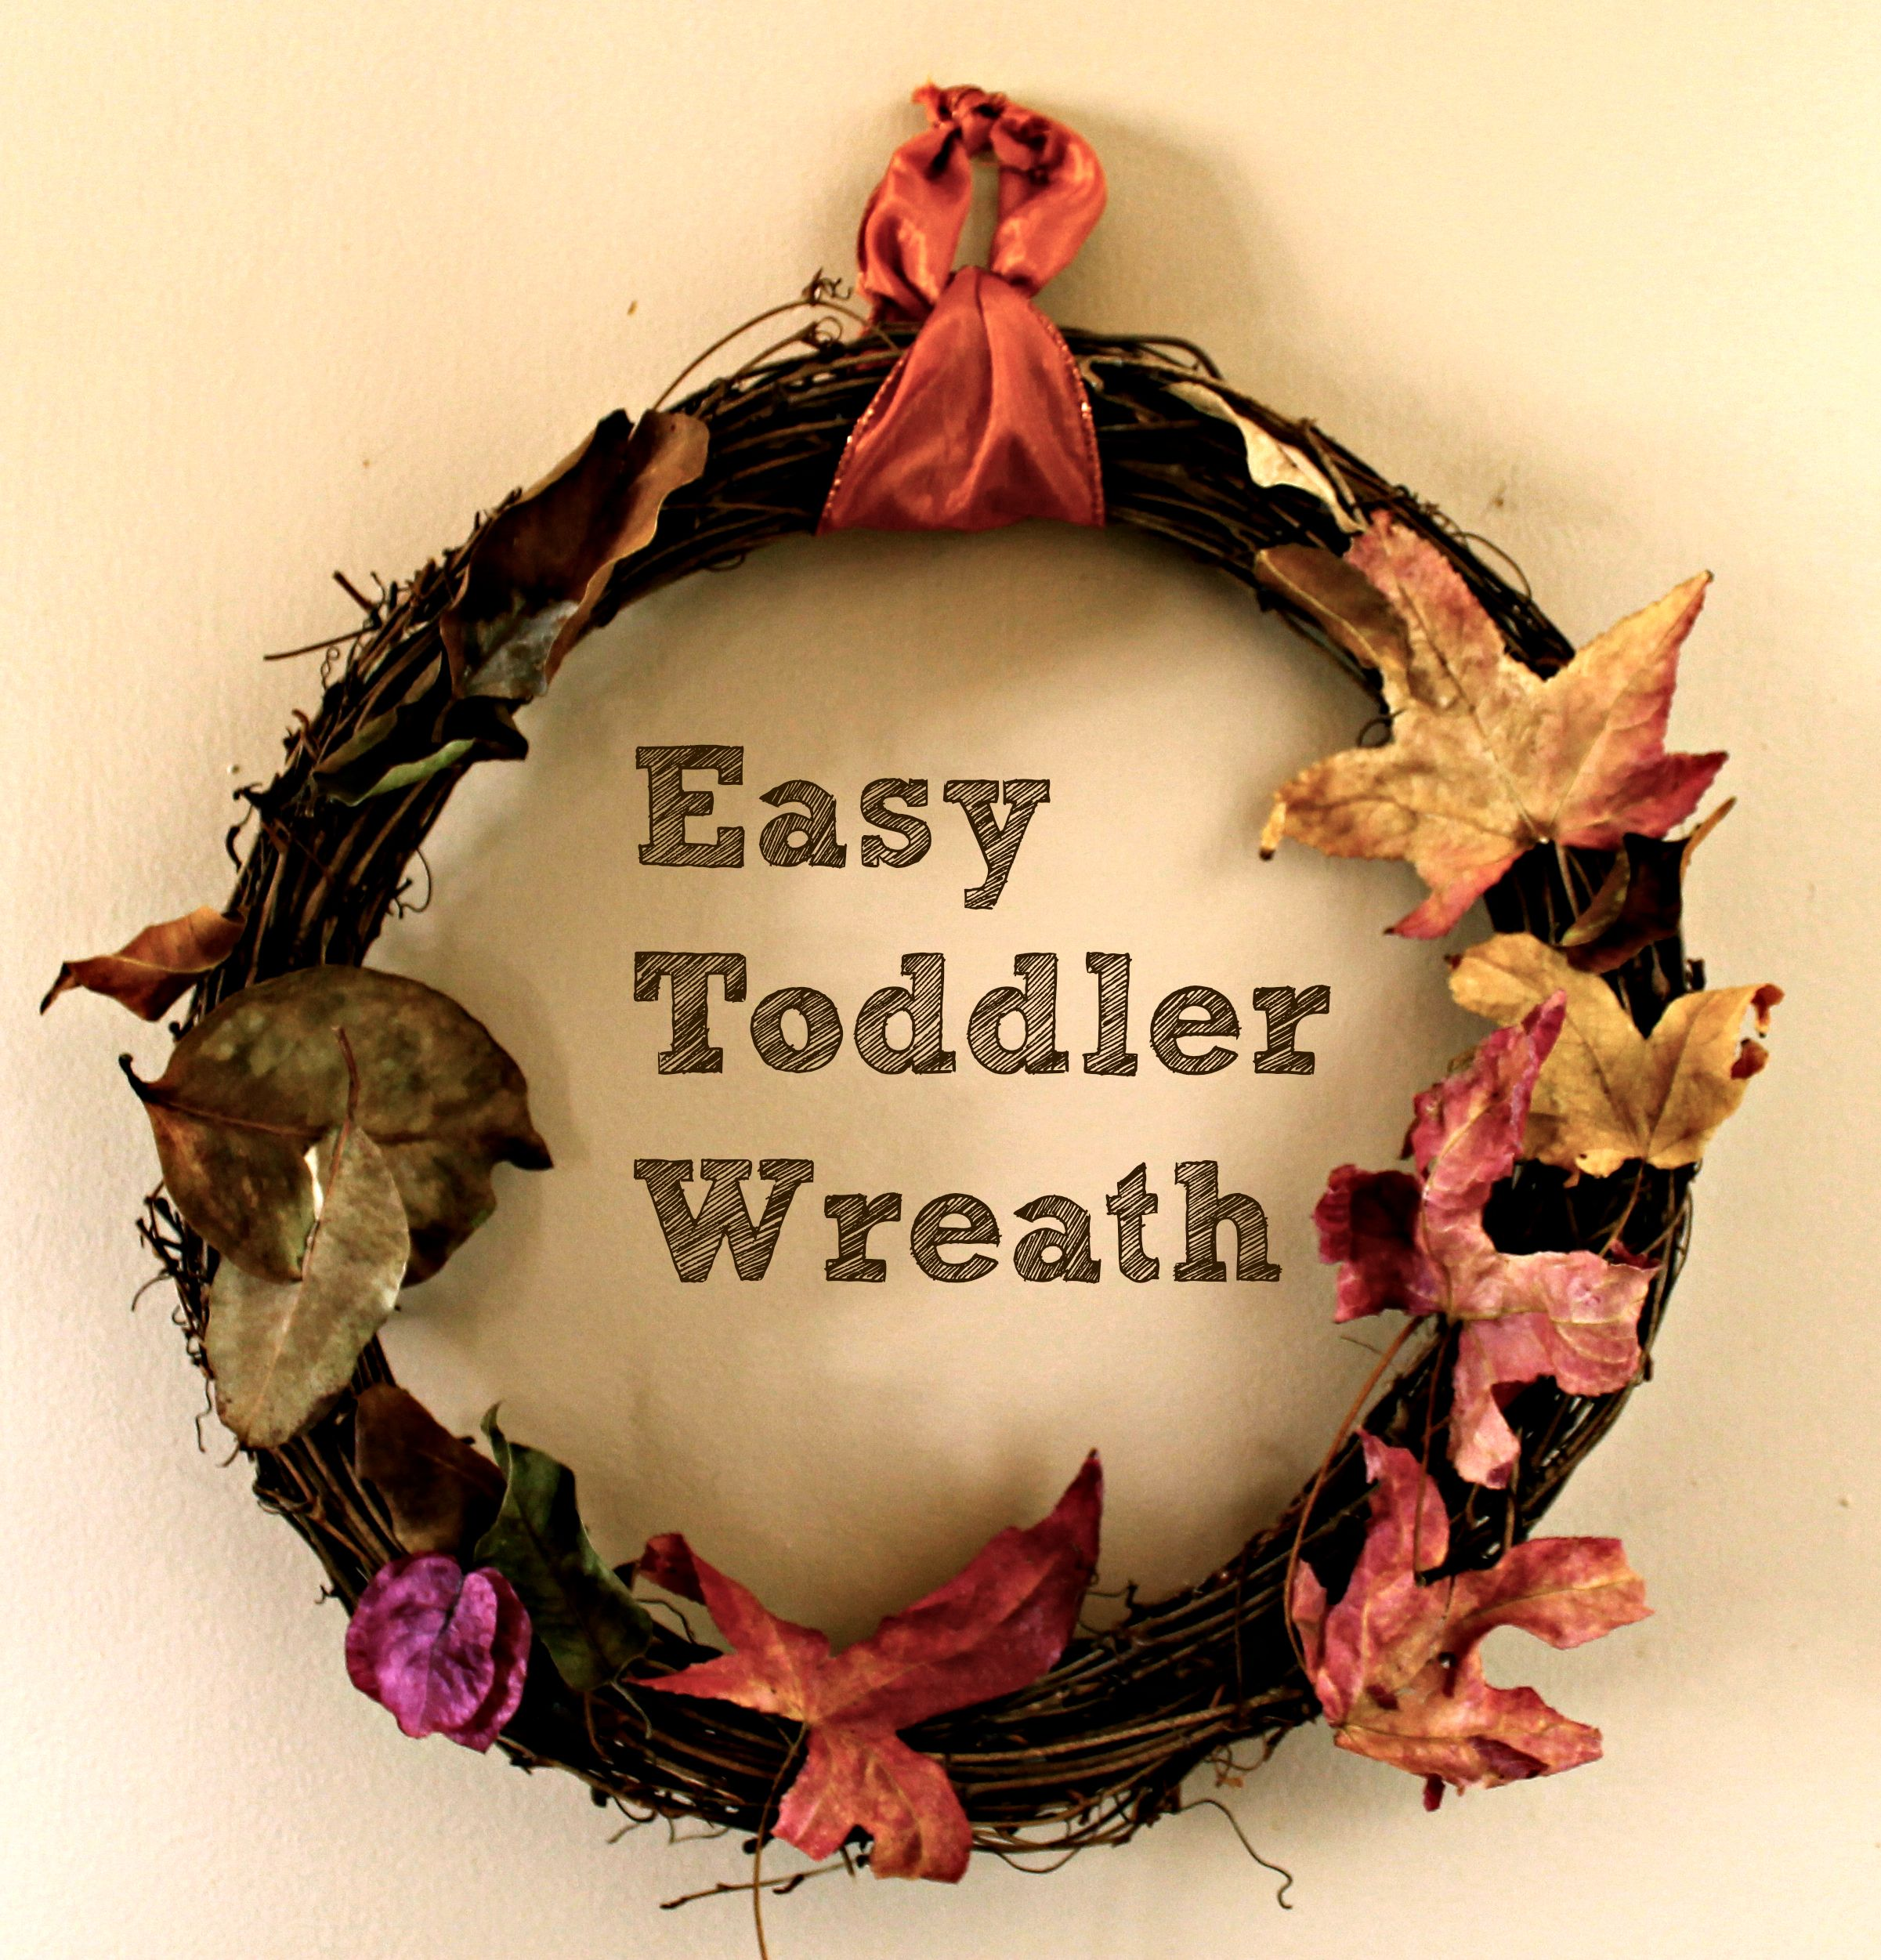 Easy Toddler Wreath: an easily attainable kid craft!